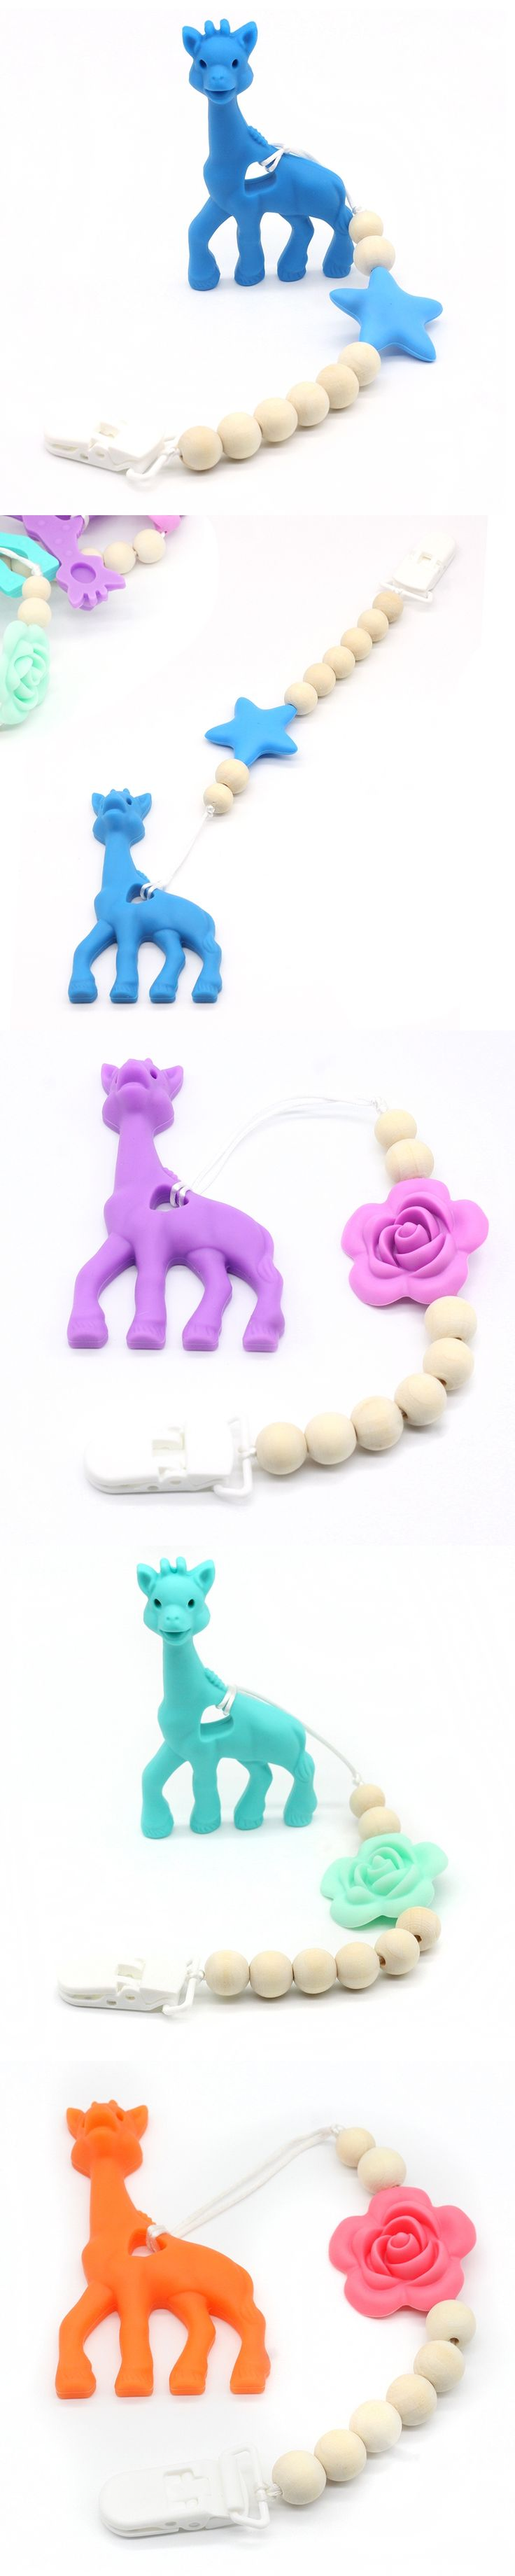 Silicone Giraffe Teething Pacifier Clip Giraffe Teether Toy Silicone Chew Teething Pacifier Clip Baby Carrier Teething Accessory